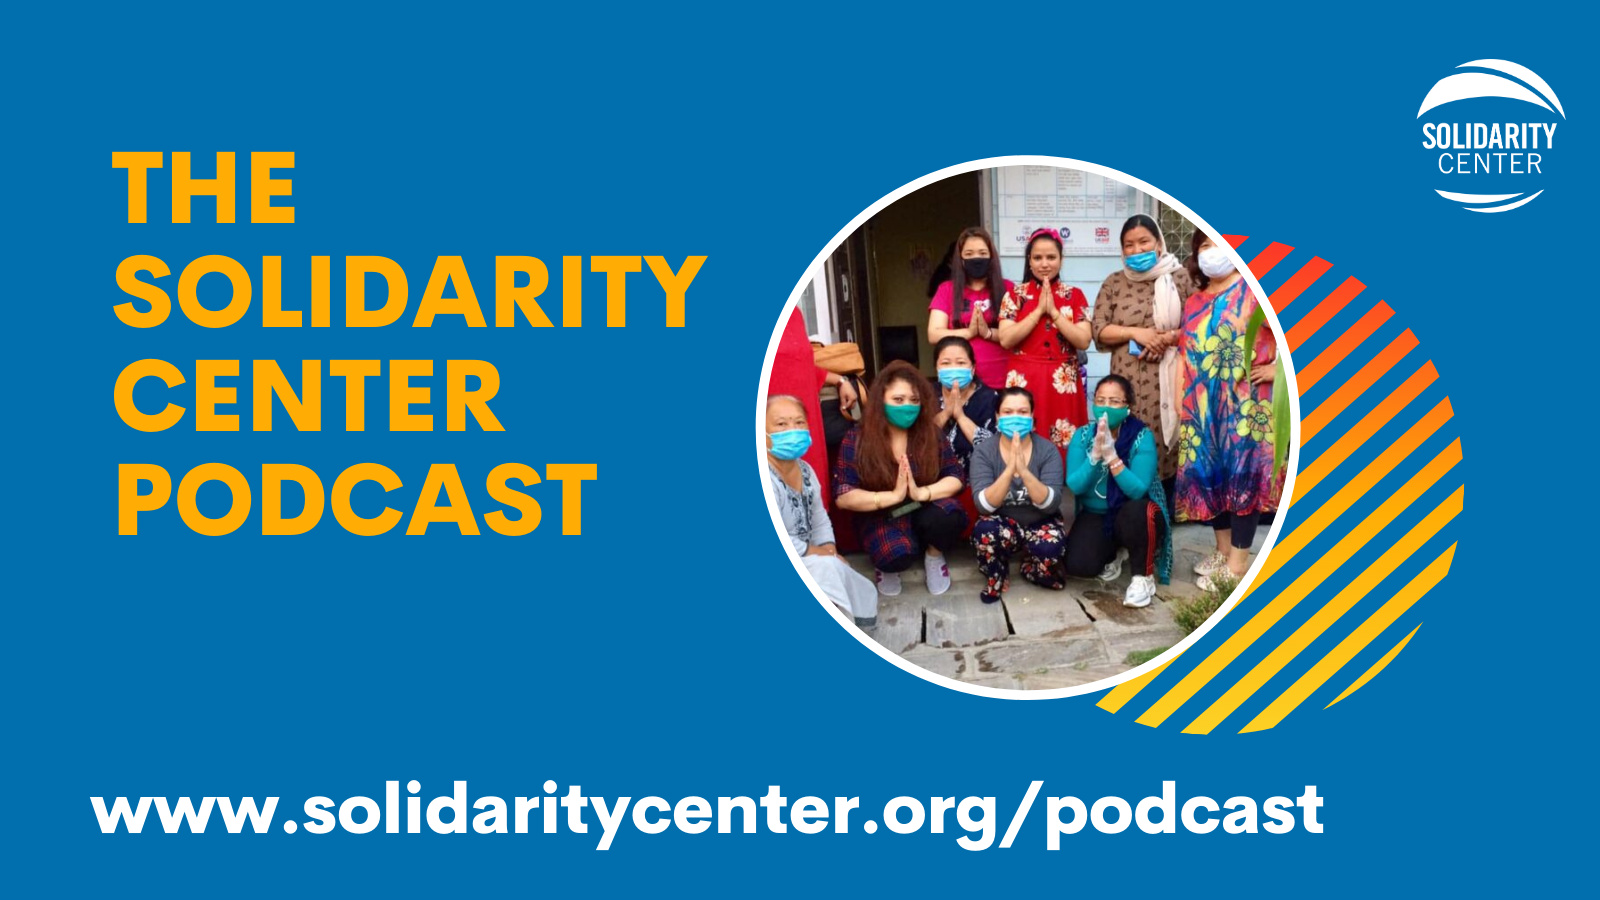 Podcast: Winning Rights for Migrant Workers During COVID-19